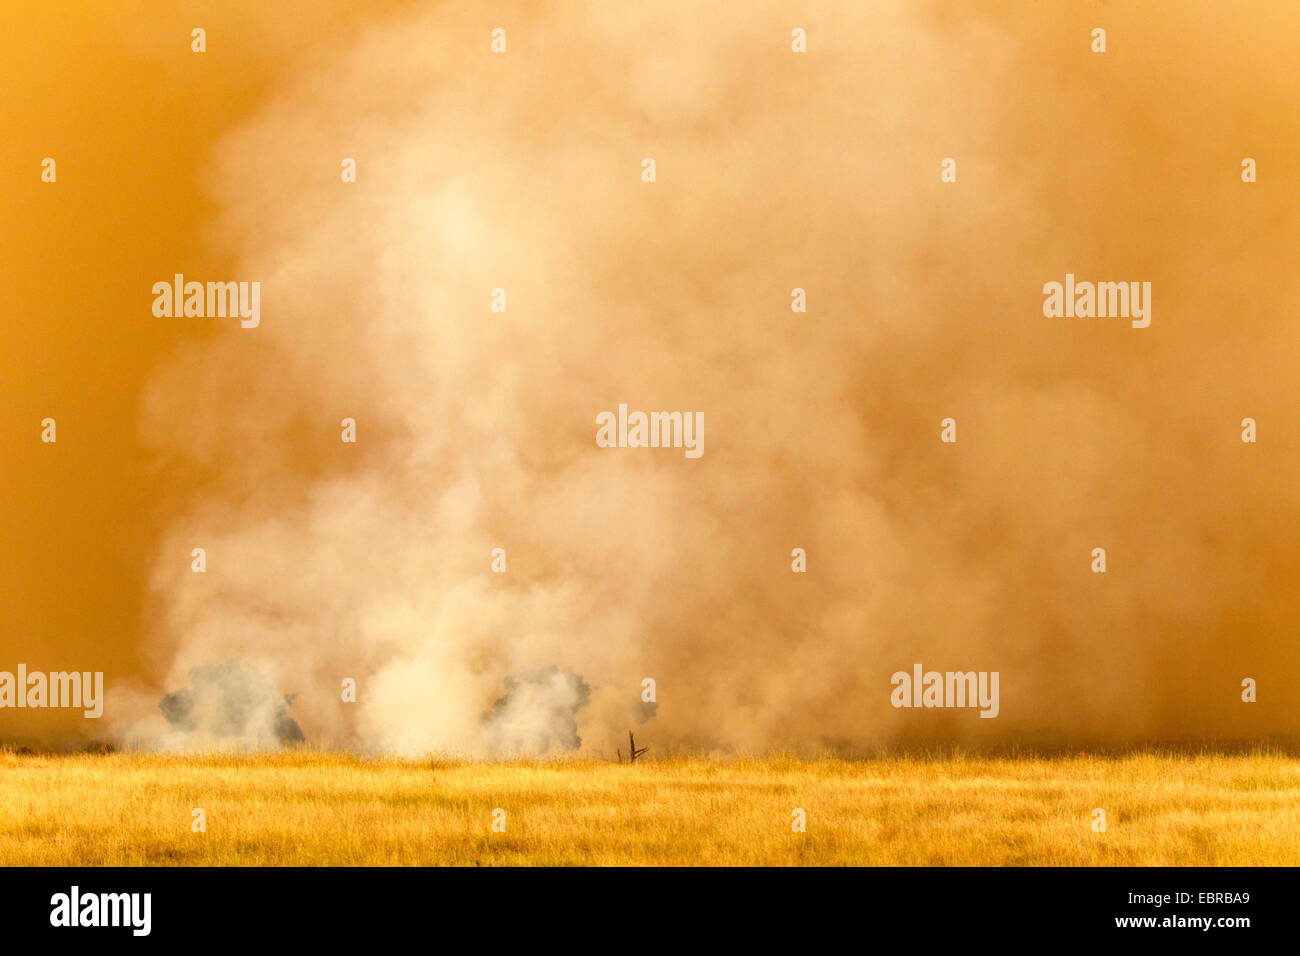 fire in savannah, Kenya, Masai Mara National Park - Stock Image